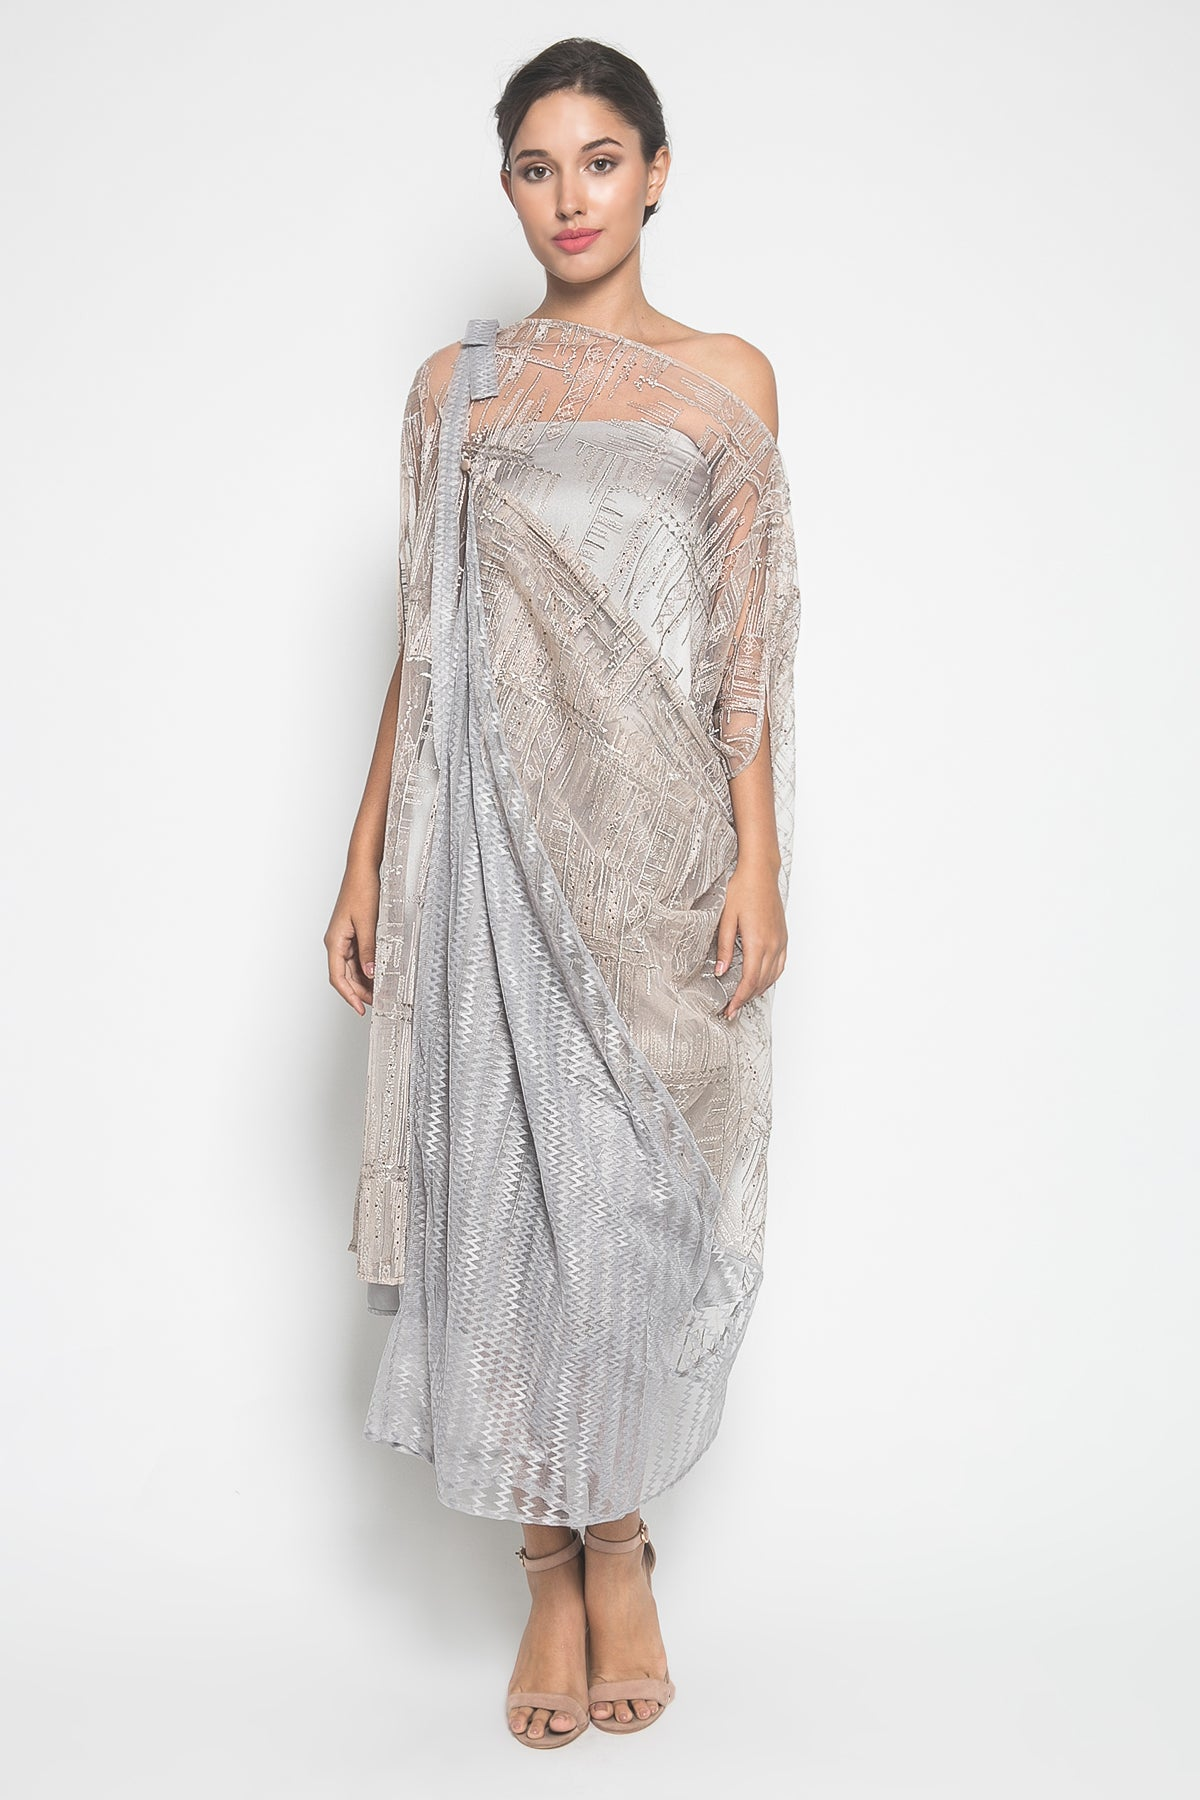 MYVB Atelier Lou Twisted Dress in Greyish Gold